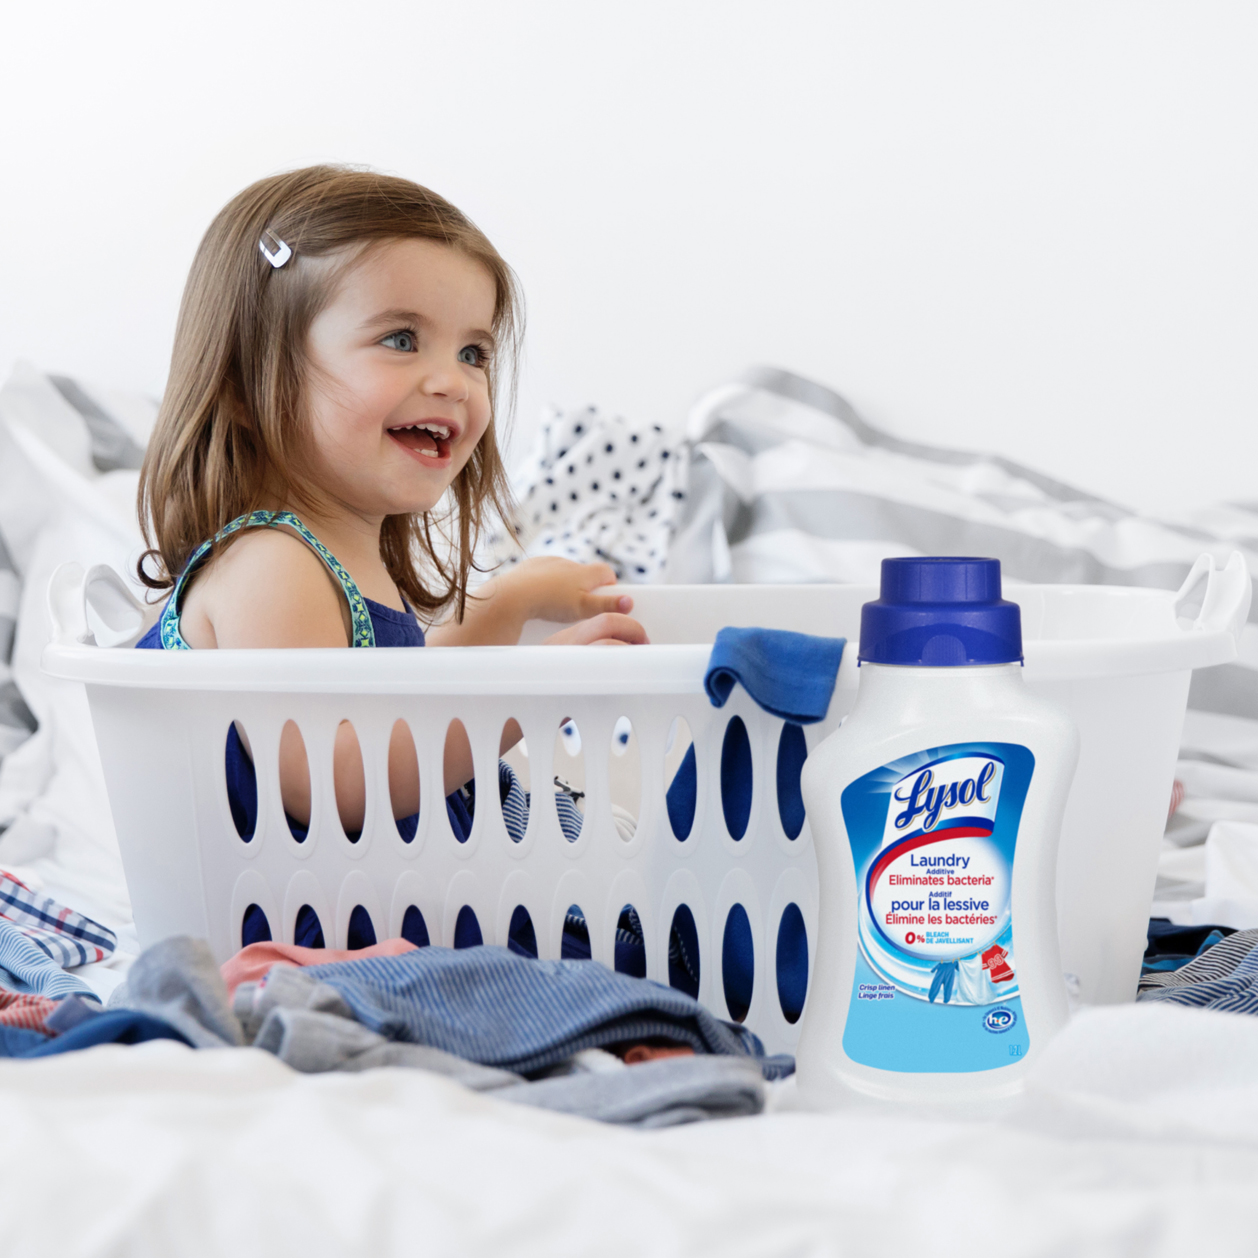 Young child sitting in plastic laundry basket and smiling surrounded by laundry and container of Lysol Laundry Sanitizer